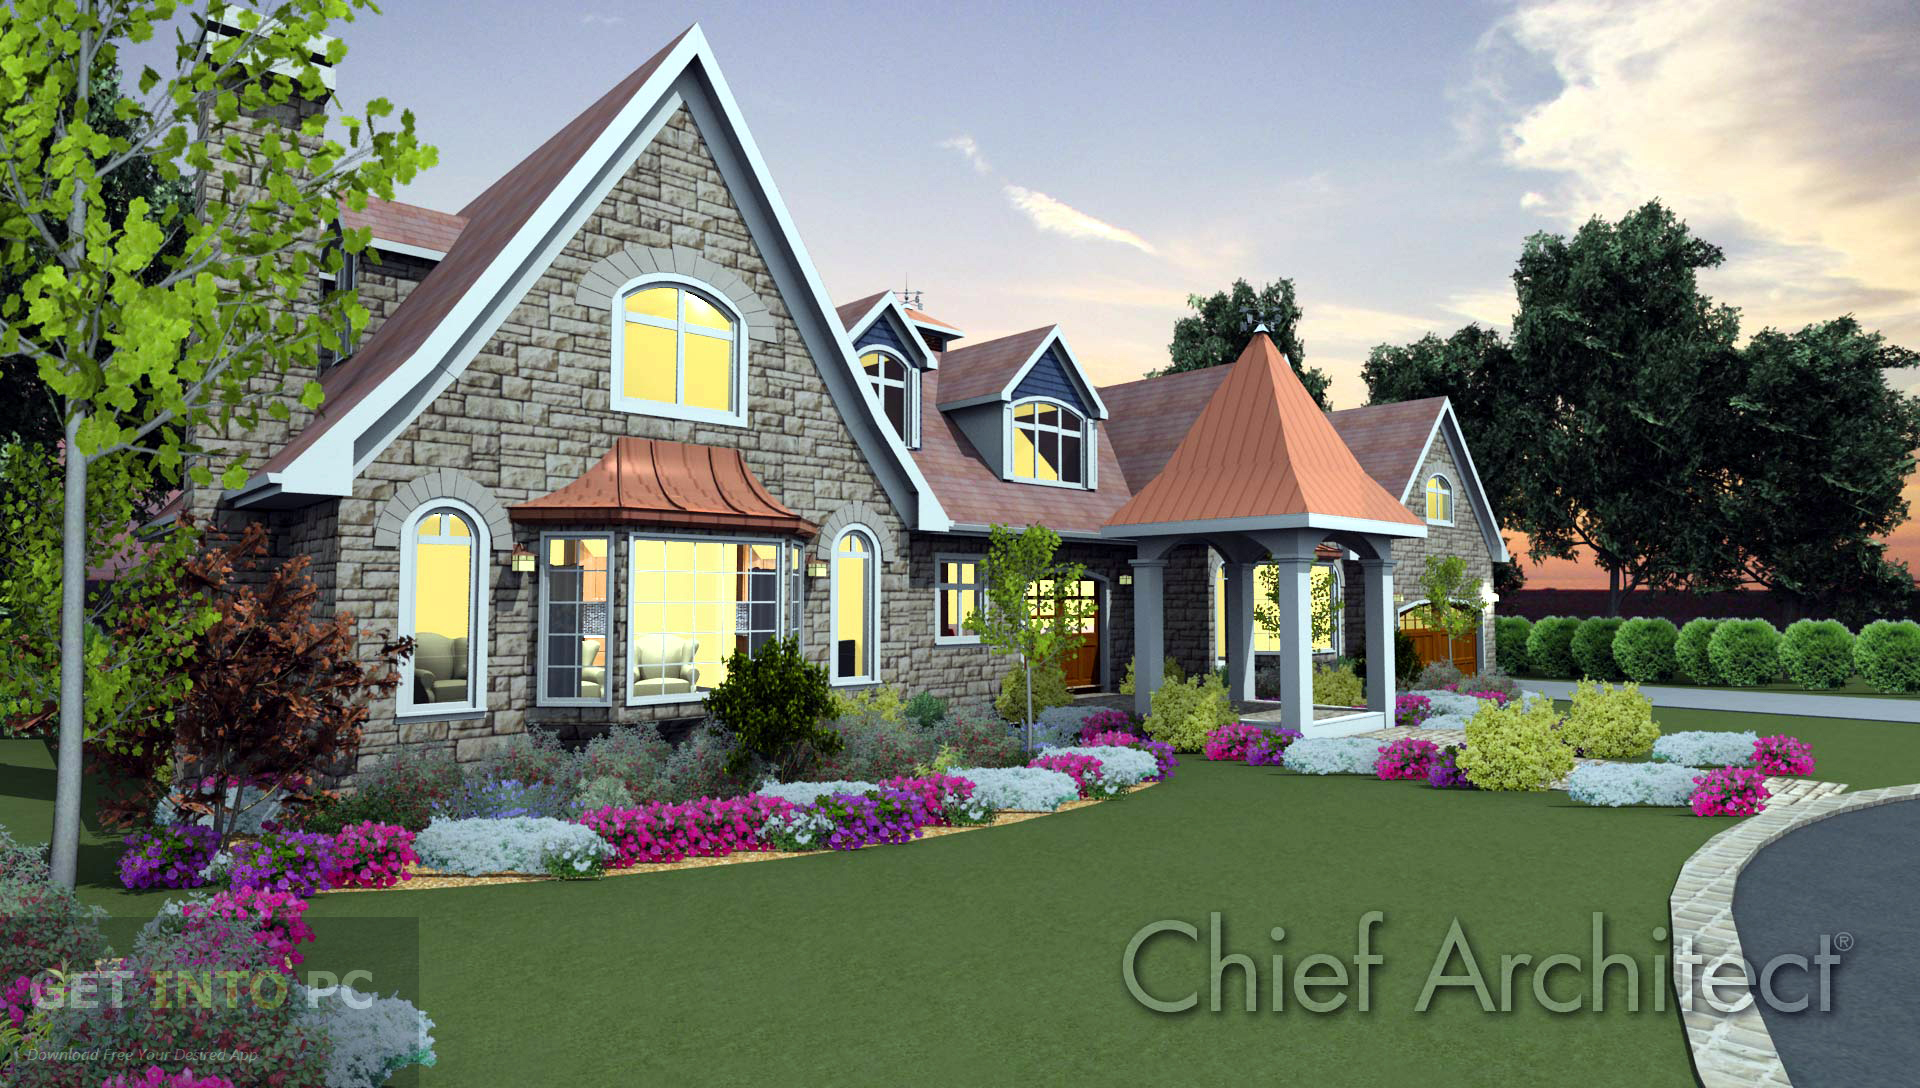 Chief architect premier free download House building software free download